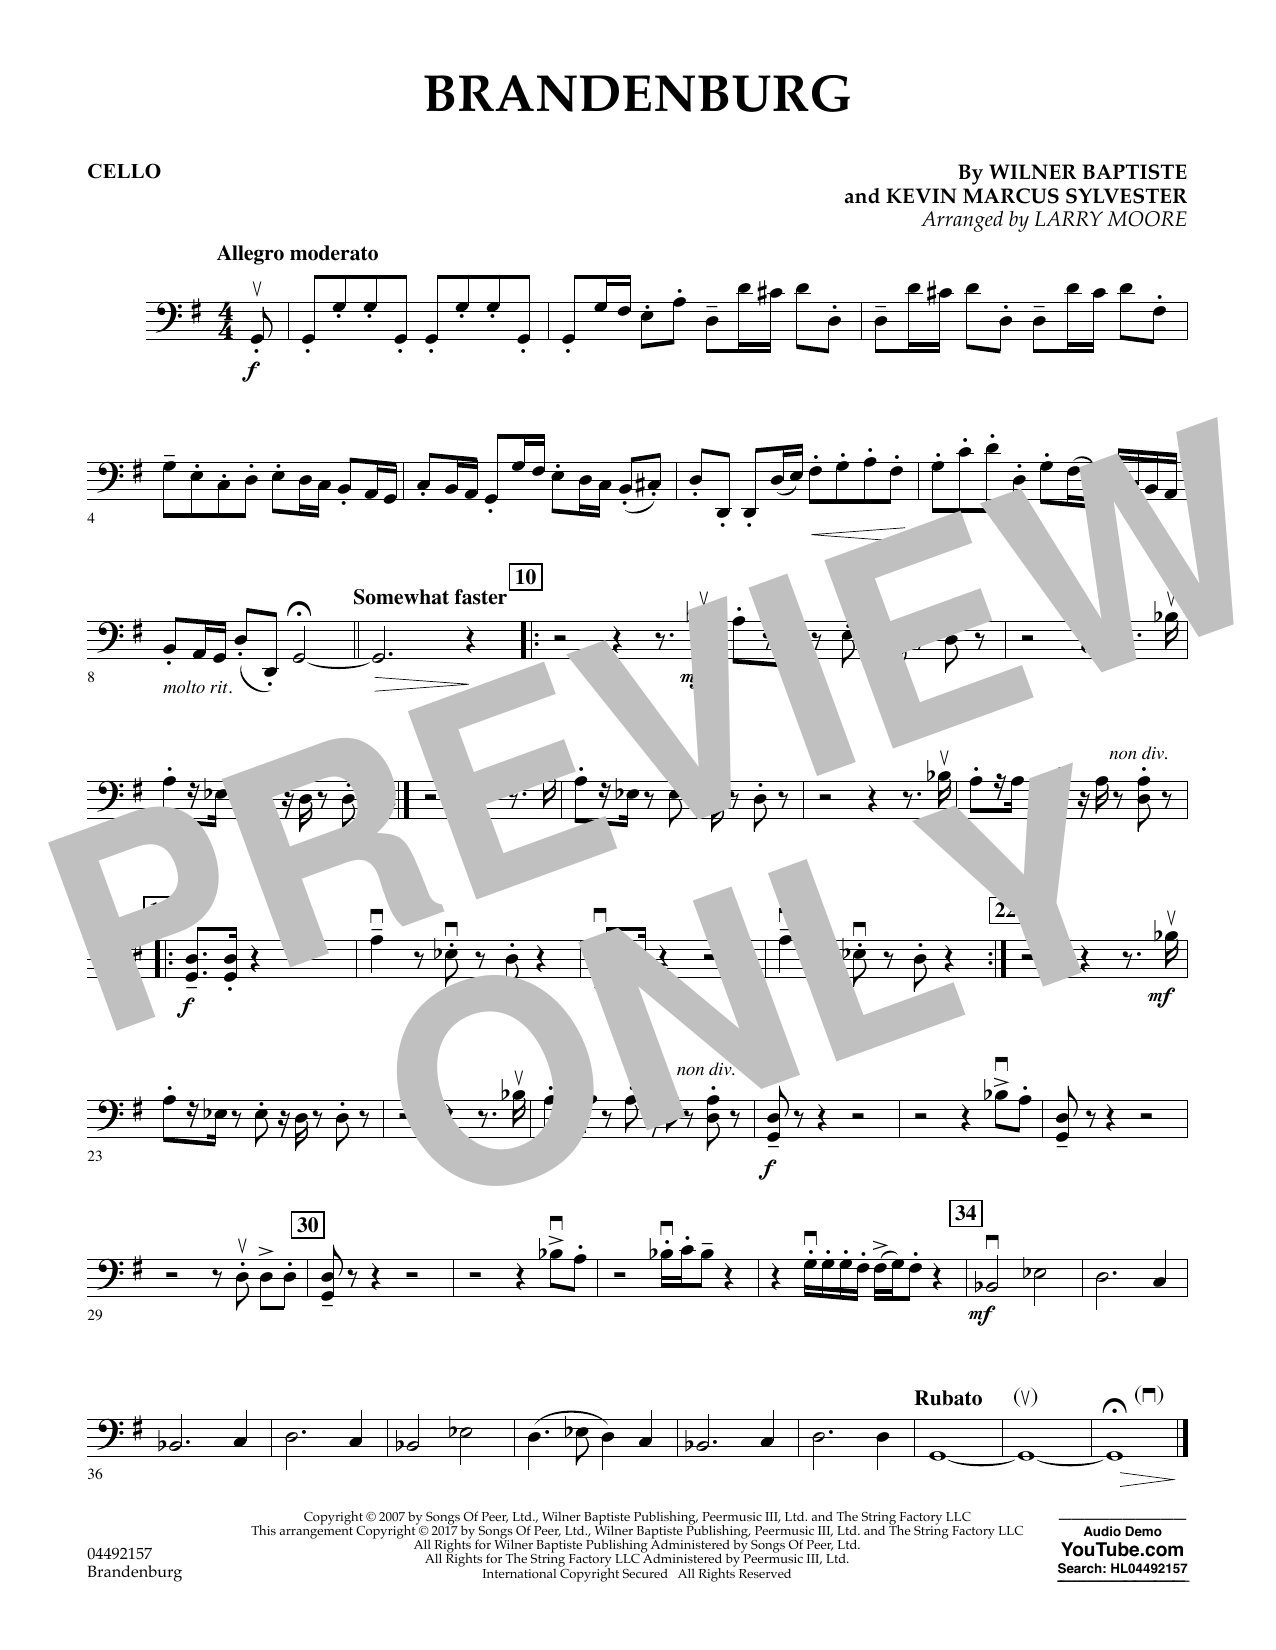 Download Larry Moore 'Brandenburg - Cello' Digital Sheet Music Notes & Chords and start playing in minutes